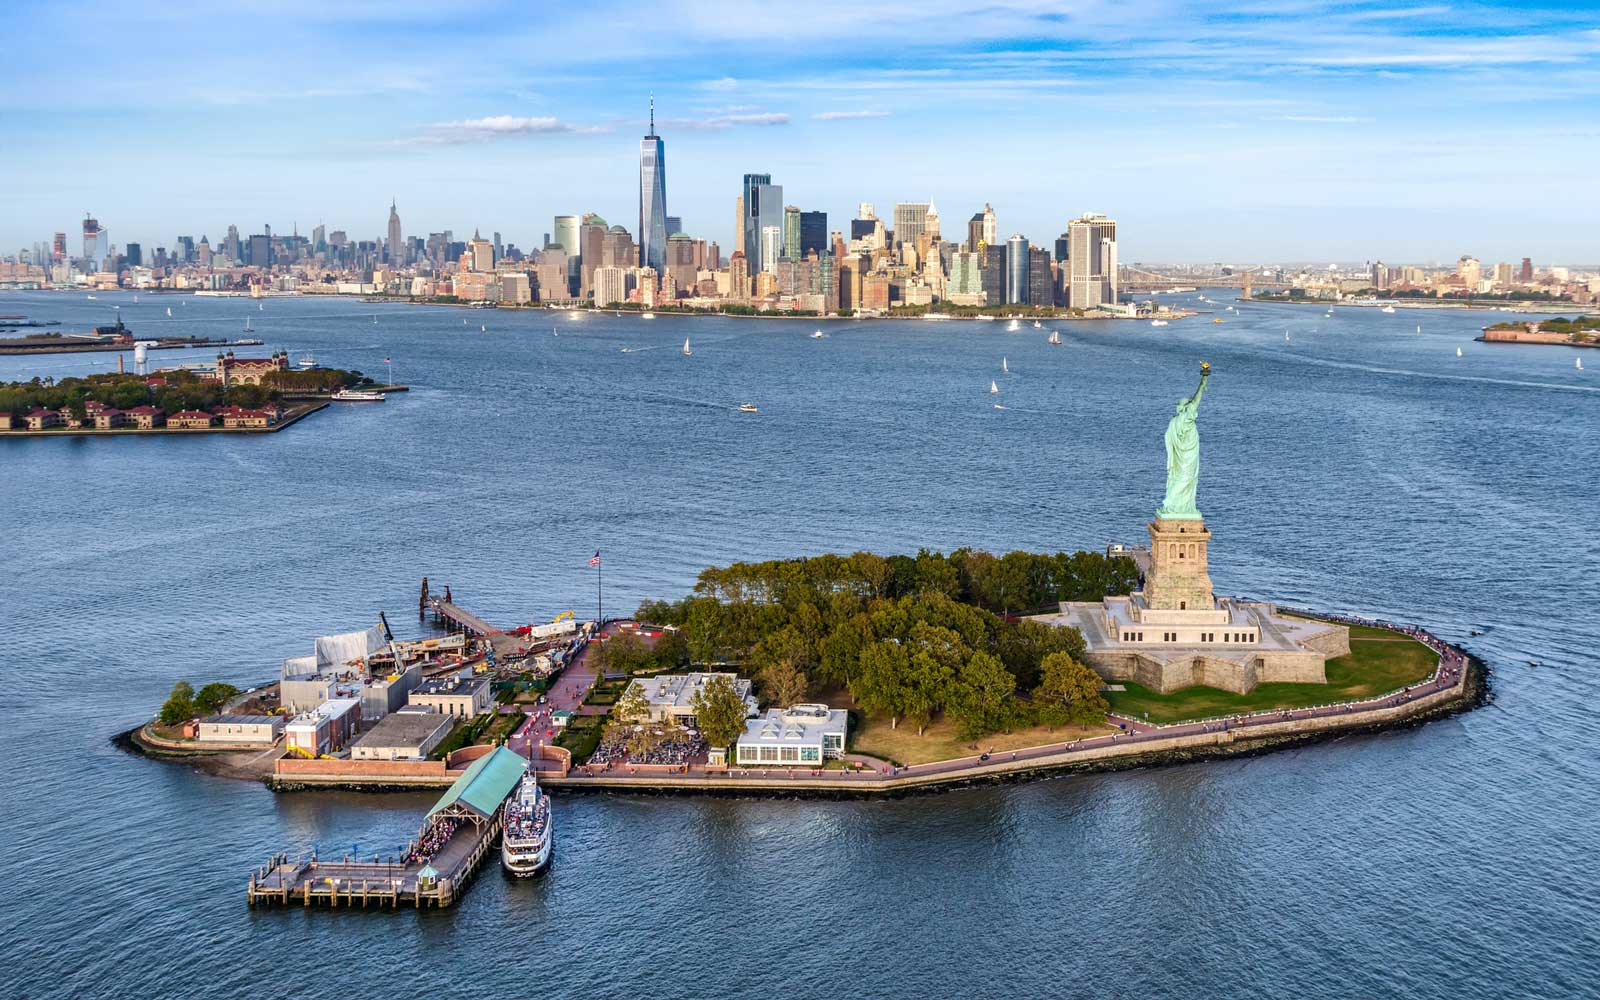 Commercial Tour Groups Will Be Banned From Parts of the Statue of Liberty and Ellis Island — Here's What to Know Before You Visit